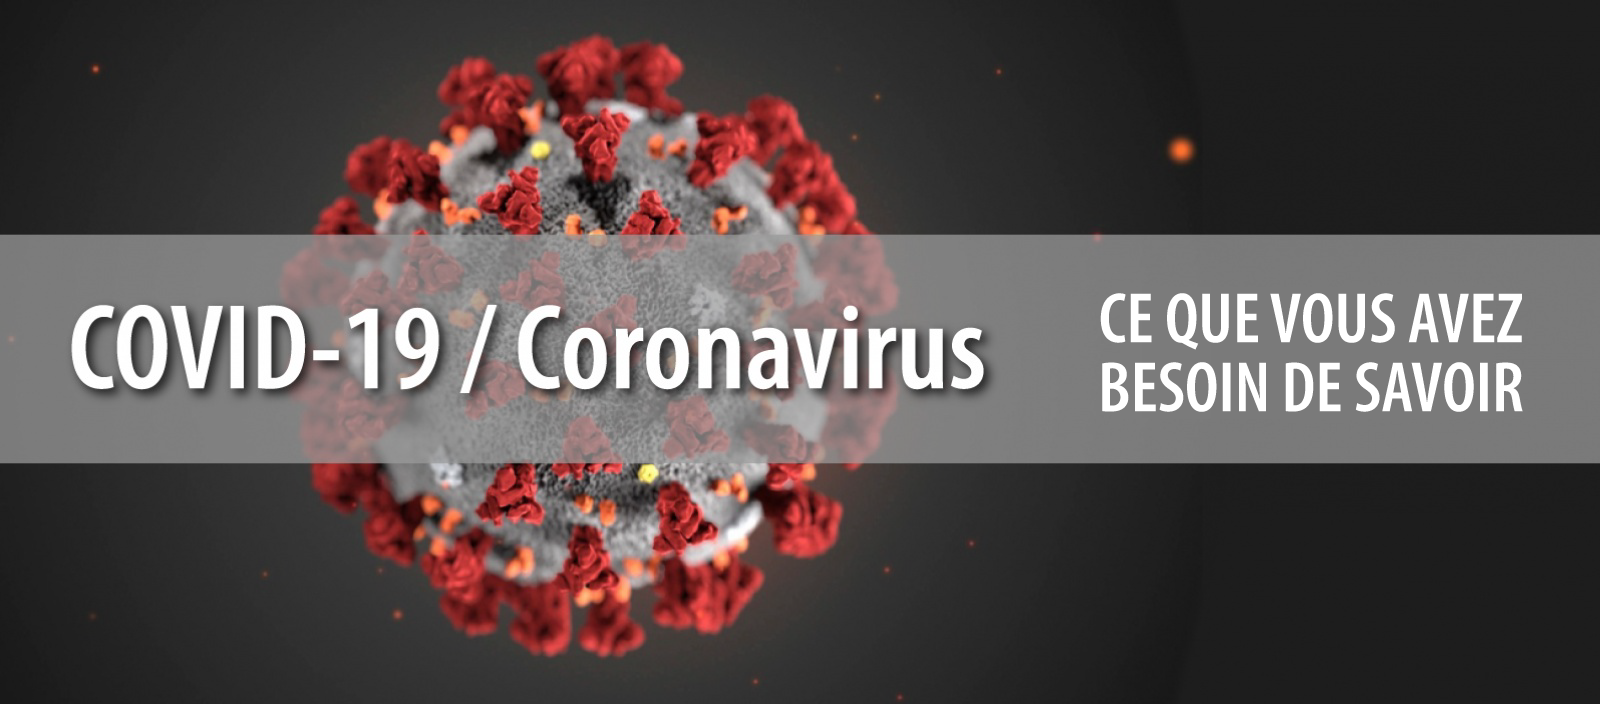 COVID-19, Information on the coronavirus